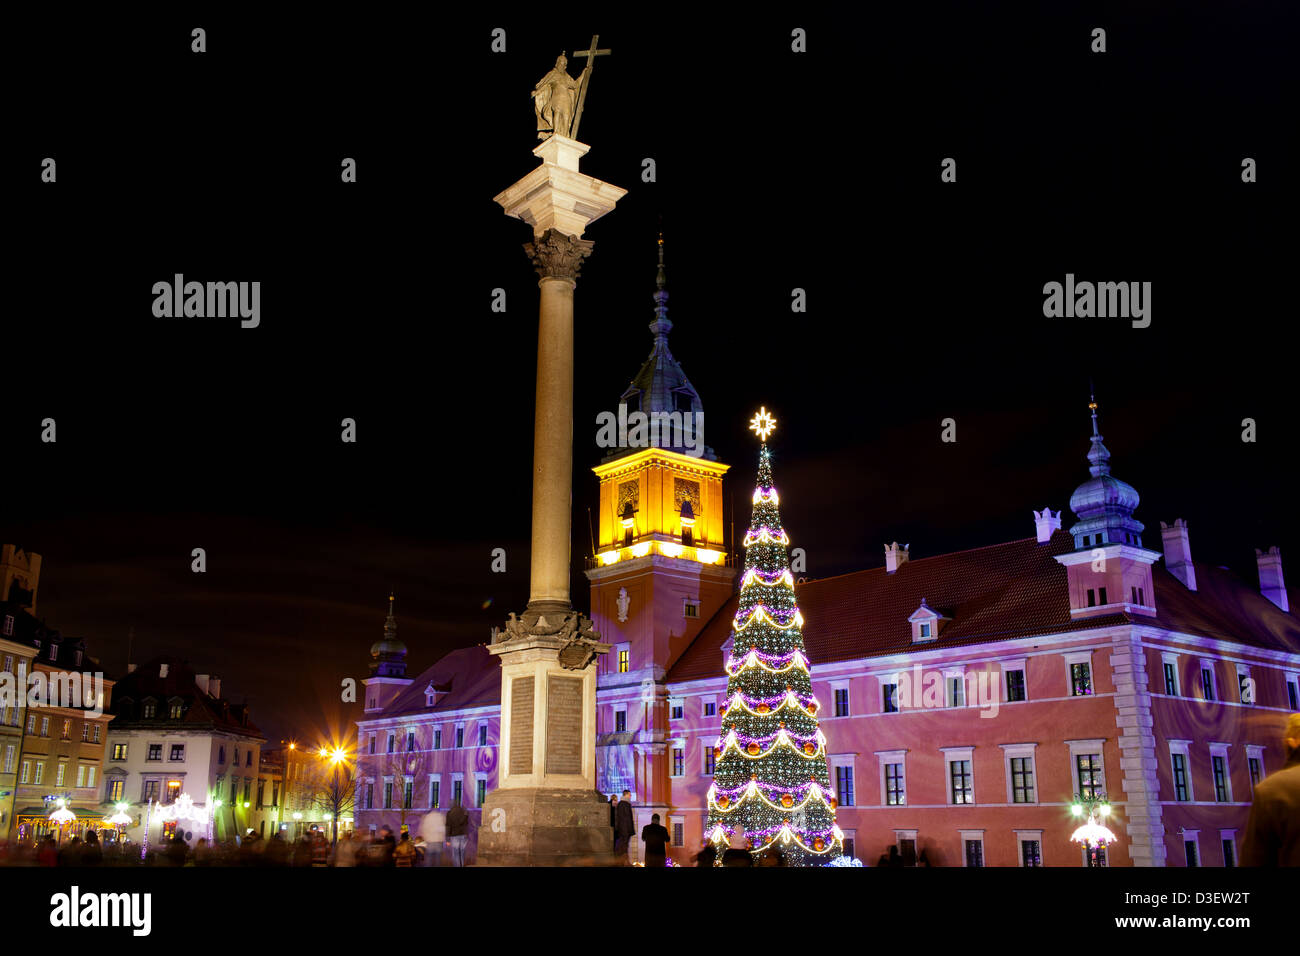 Royal Castle and King Sigismund Column illuminated at night during Christmas Time in the Old Town of Warsaw, Poland. - Stock Image